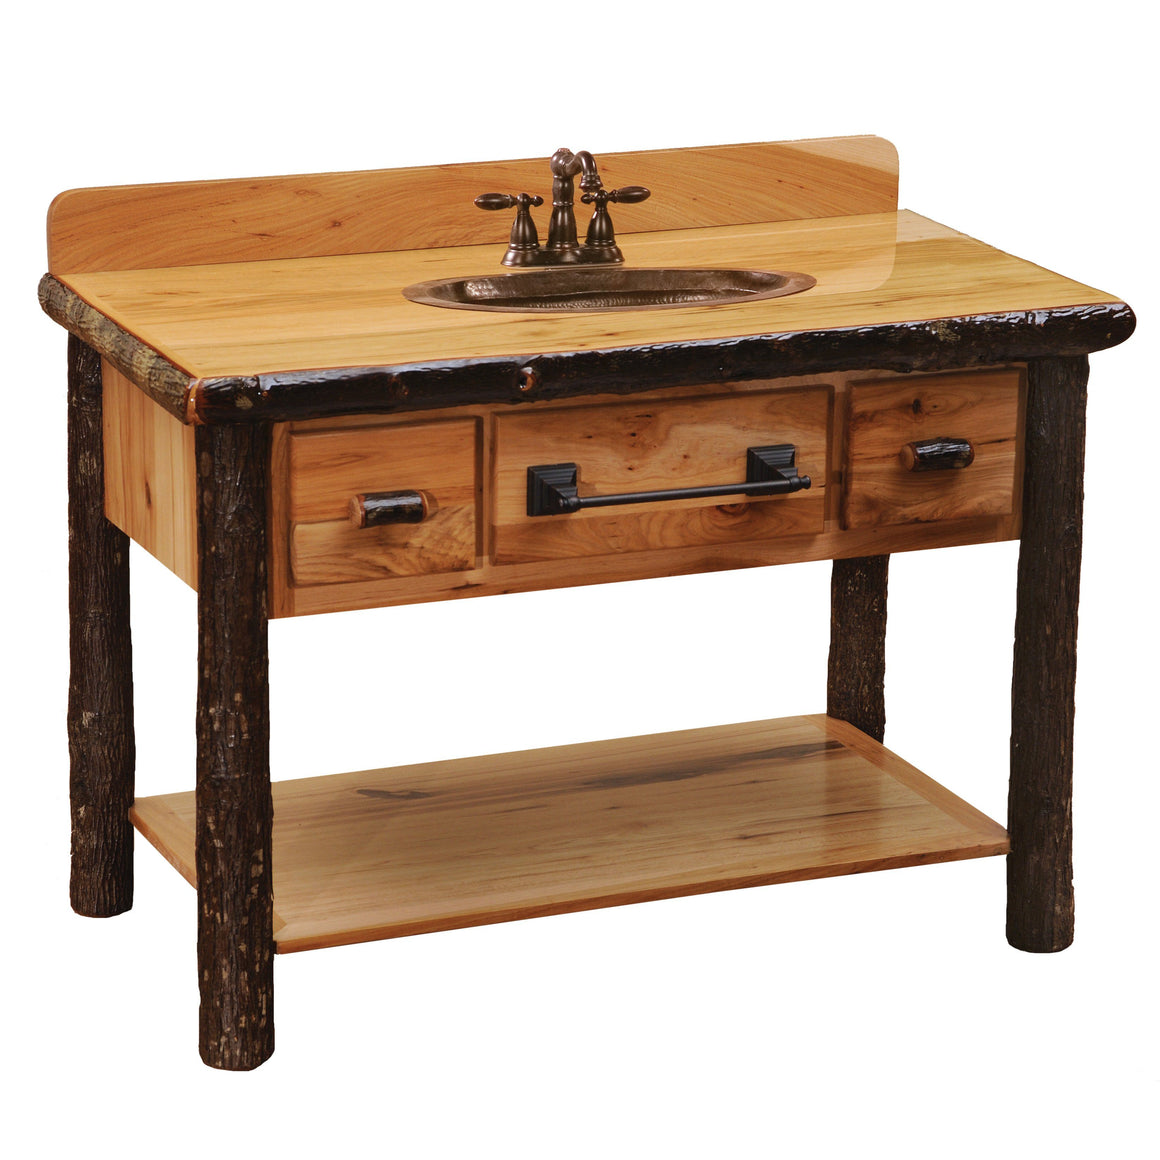 Hickory Freestanding Open Vanity with Shelf and Two Drawers - with Slab Style Top with Liquid Glass Finish - Rustic Deco Incorporated